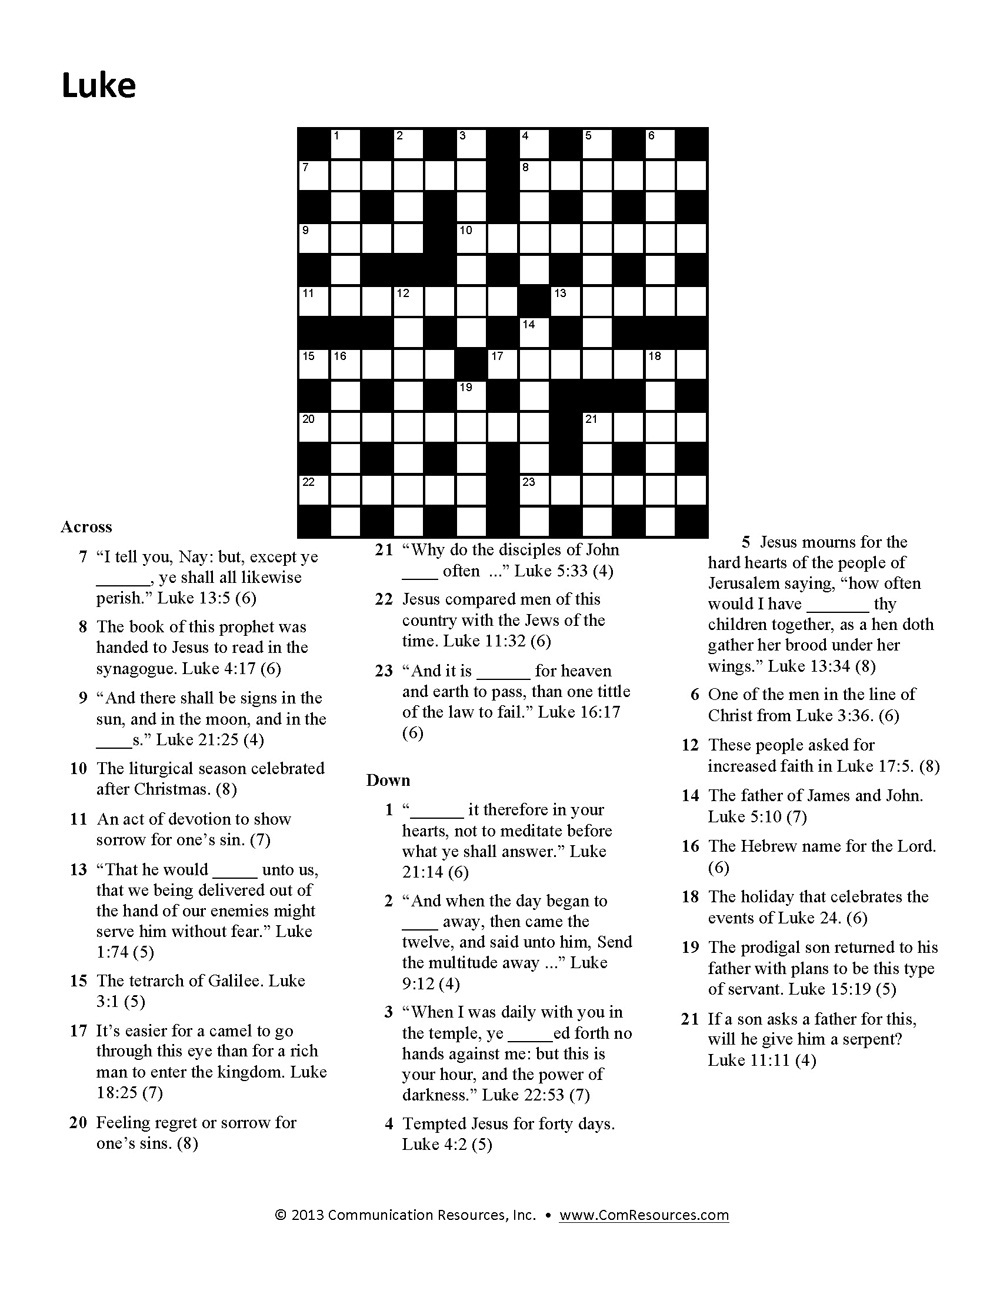 15 fun bible crossword puzzles kitty baby love